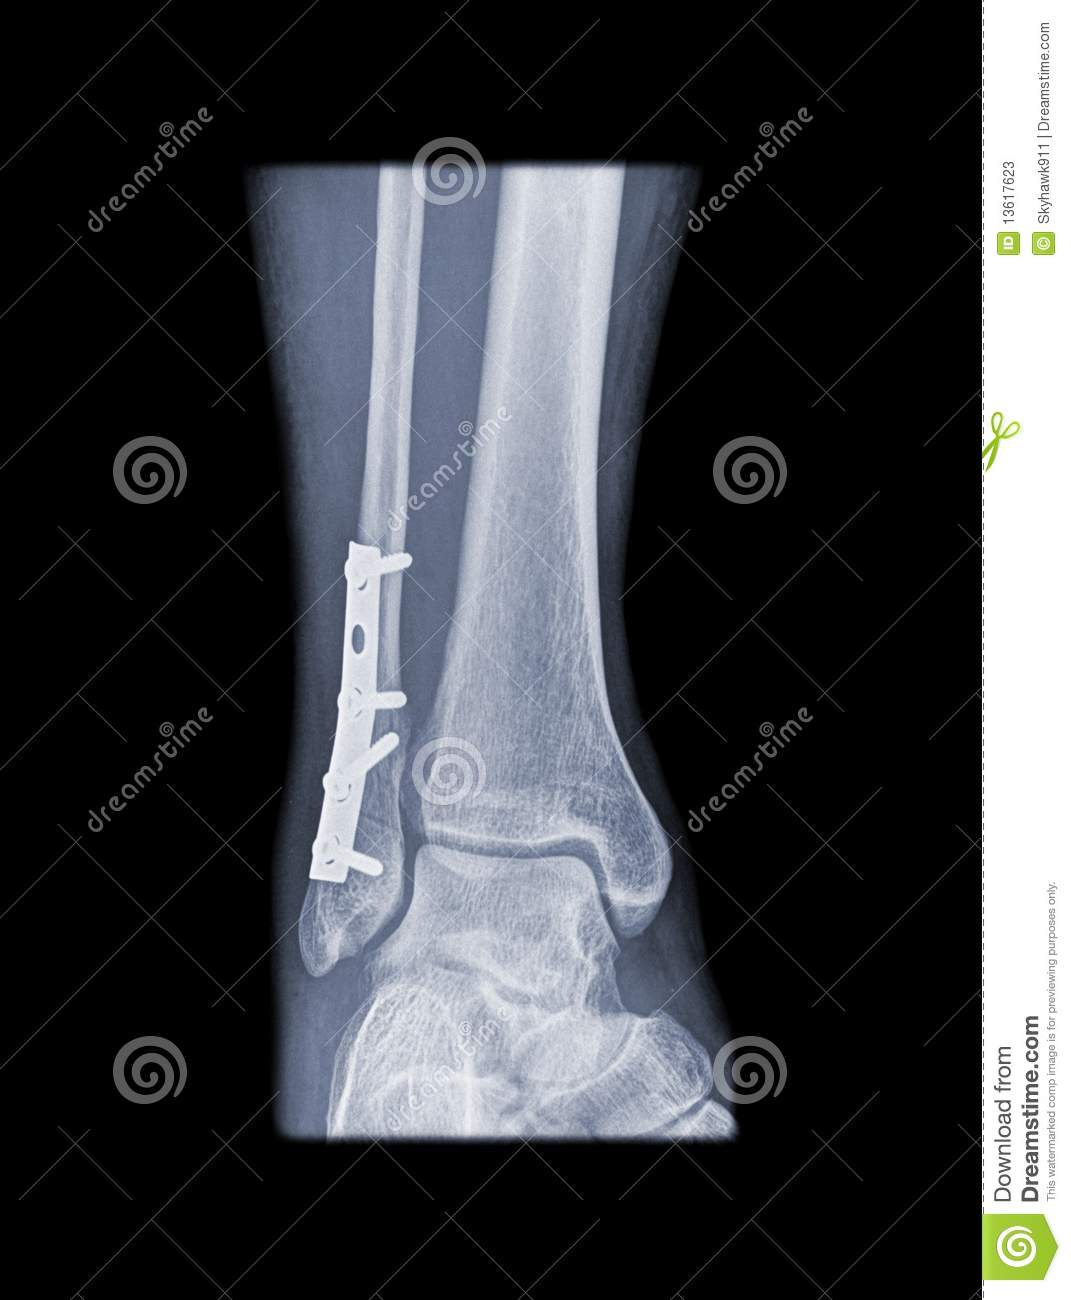 Fixed weber b fracture stock image. Image of pain, injury ...